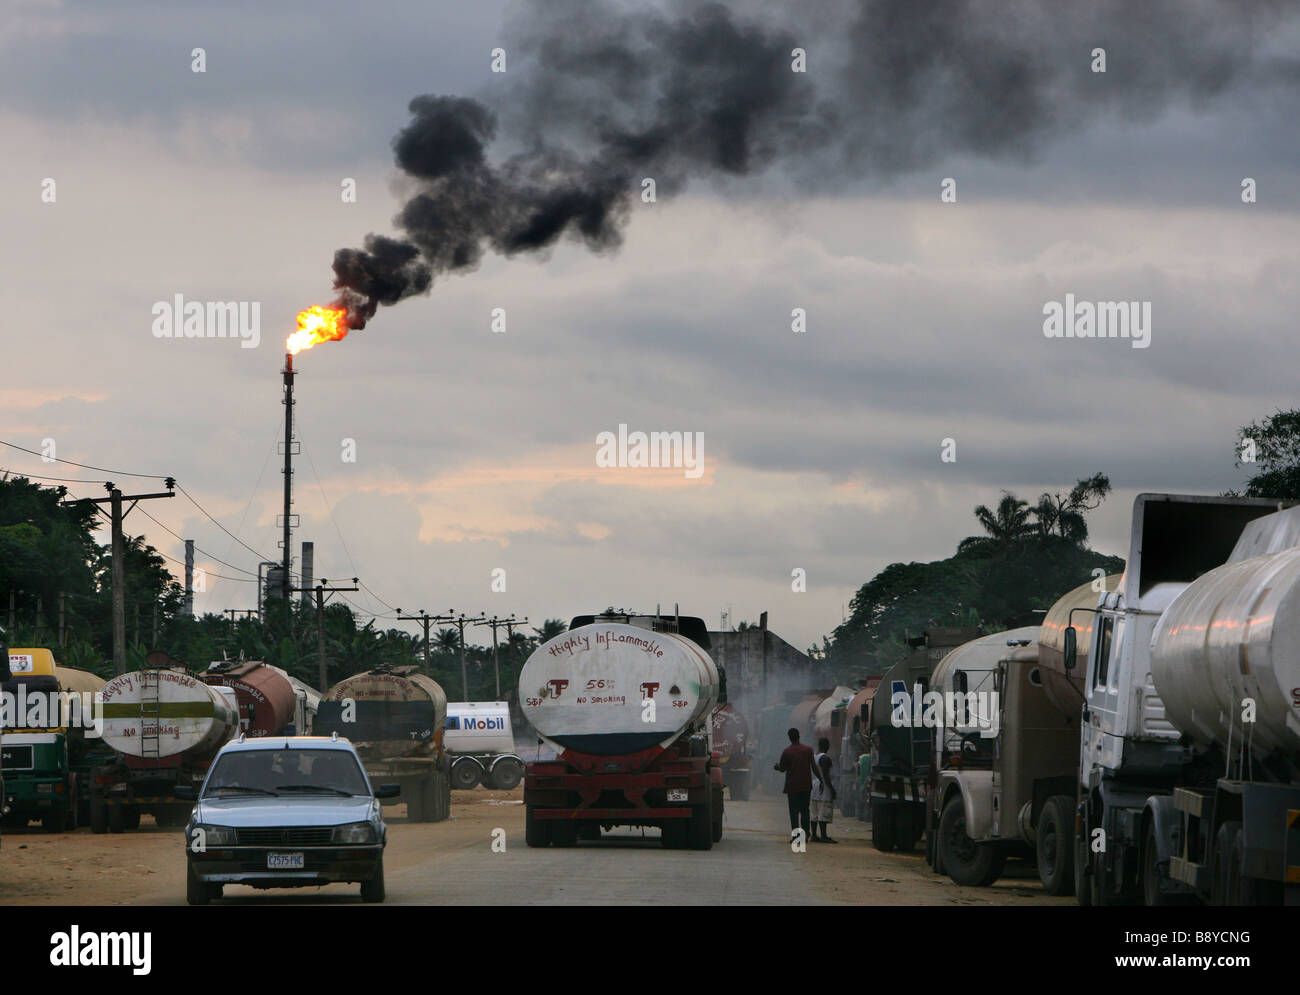 Nigeria: Tankers wait at a refinery of the SHELL company near Port Harcourt - Stock Image